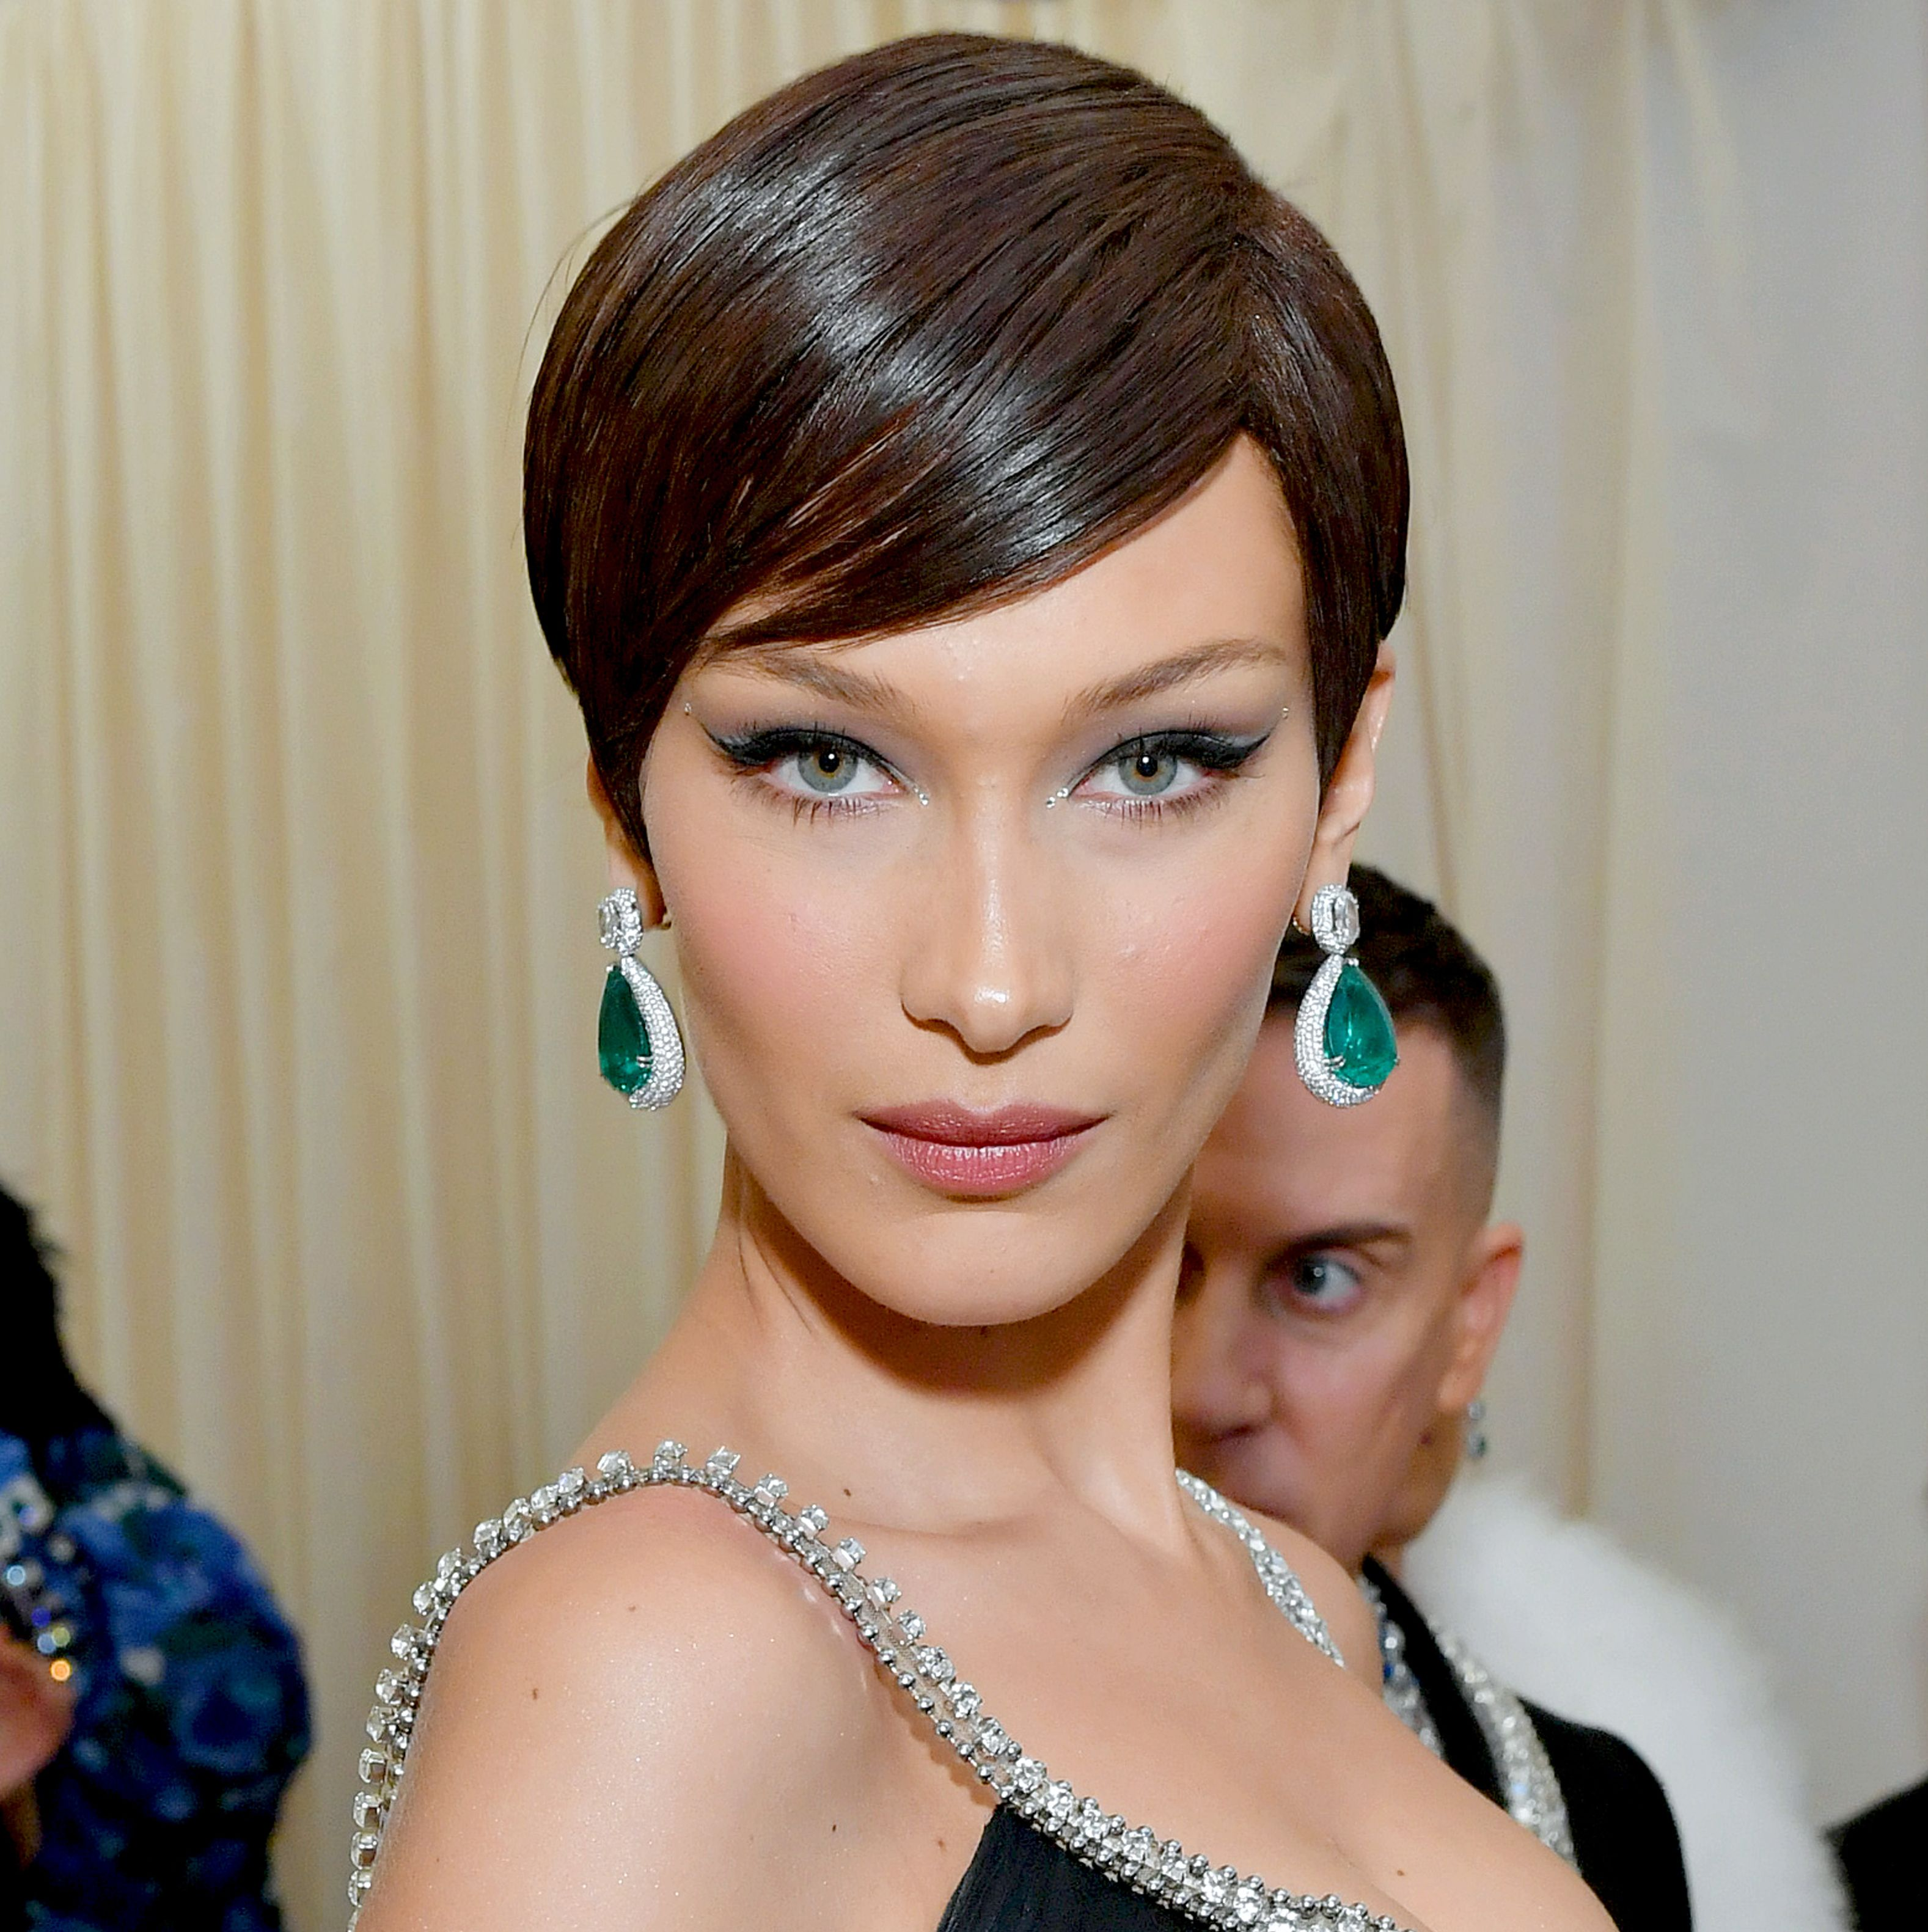 Bella Hadid Hadid got her hair in the shortest, shiniest pixie to let her stunning emerald earrings shine. Her makeup was similar to what we've seen from her in the past: glowy skin and winged liner.